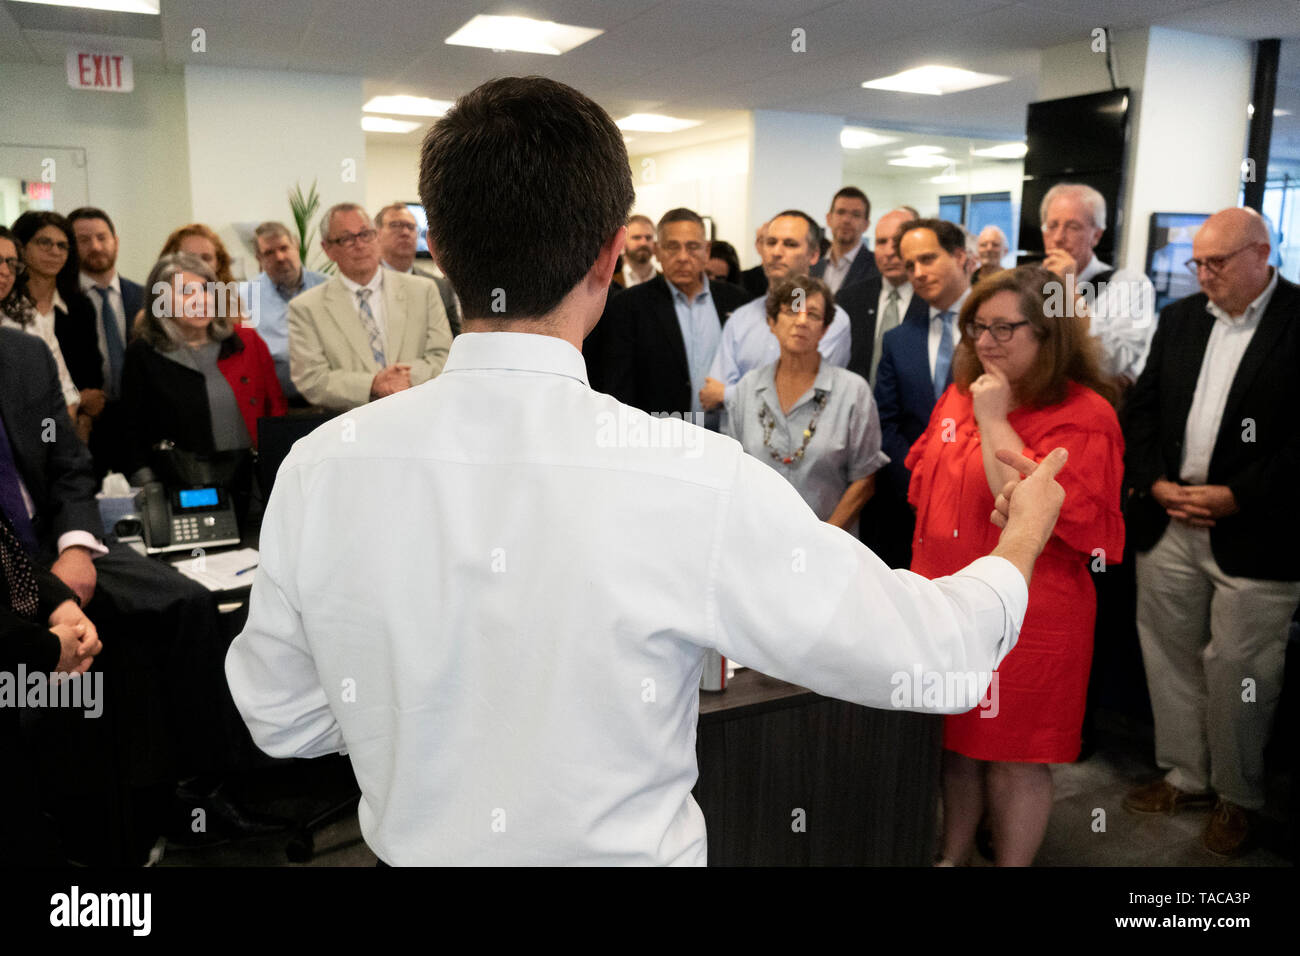 Mayor Pete Buttigieg meets with leaders of the Jewish community at a communal parlor meeting at the offices of Bluelight Strategies in Washington, DC, U.S. on May 23, 2019. Credit: Stefani Reynolds/CNP   usage worldwide Stock Photo